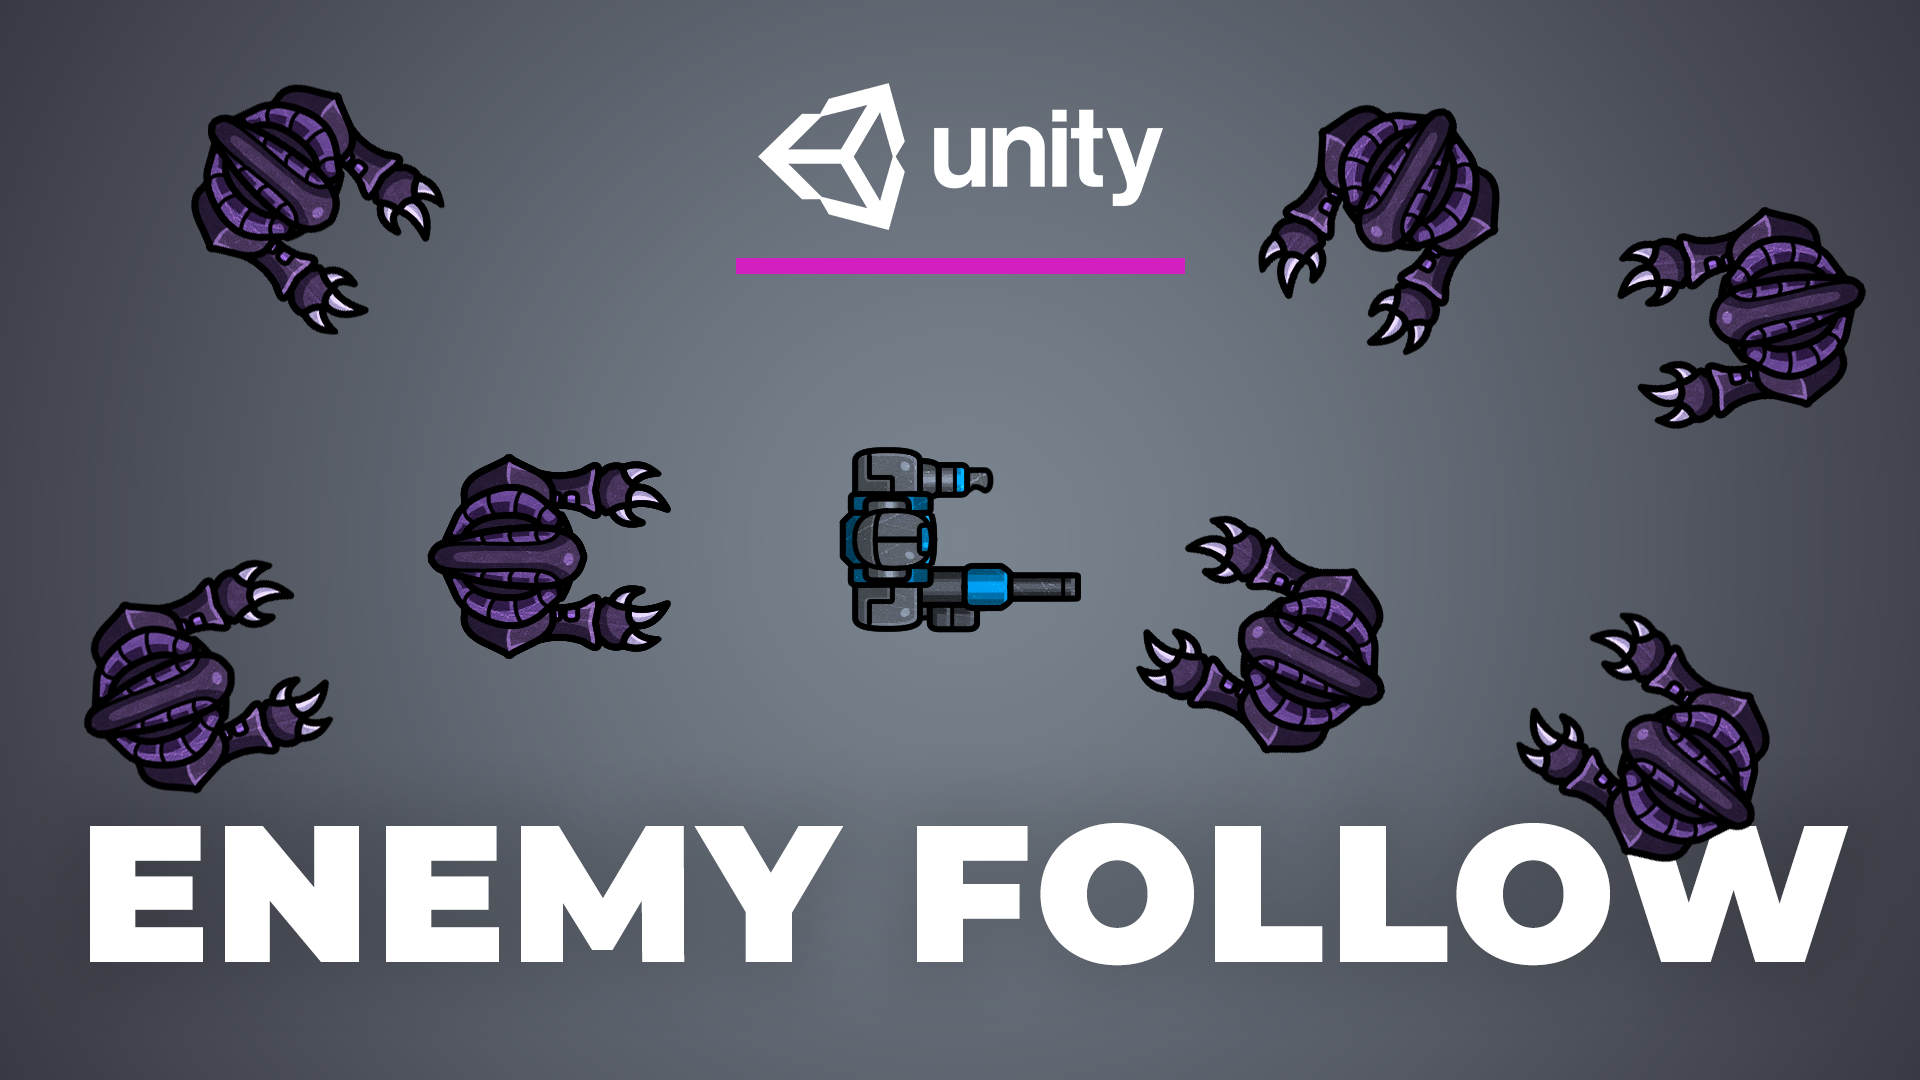 Follow Enemy AI - How to make enemies follow a player object